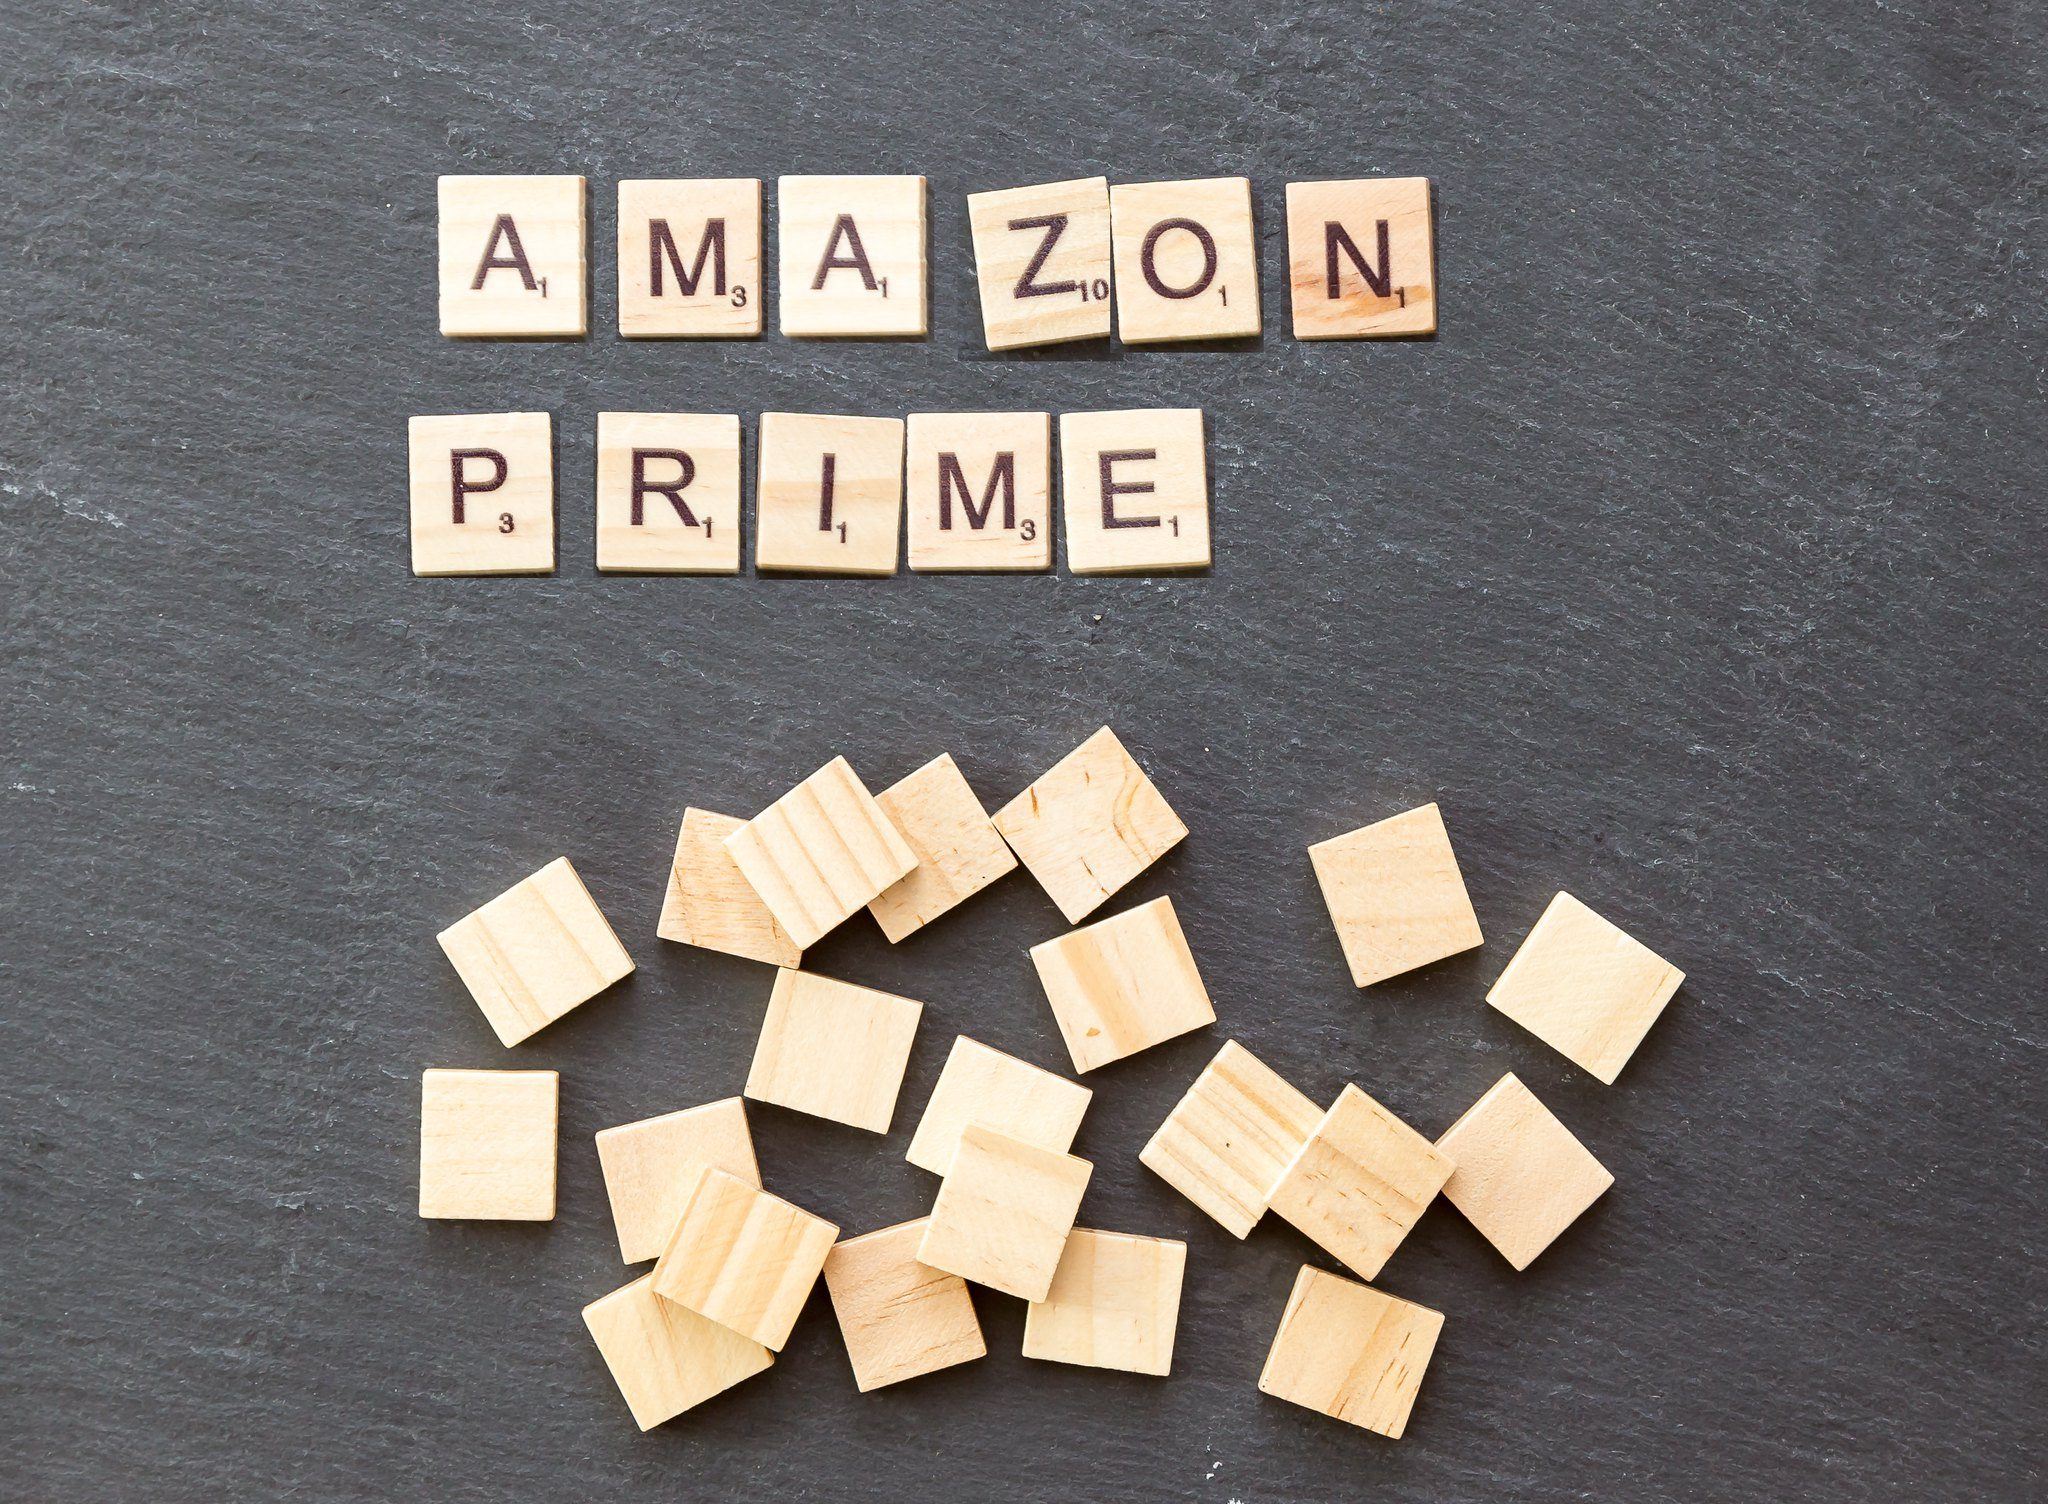 c032a7615c24cd Amazon Prime conviene? L'analisi di costi e vantaggi